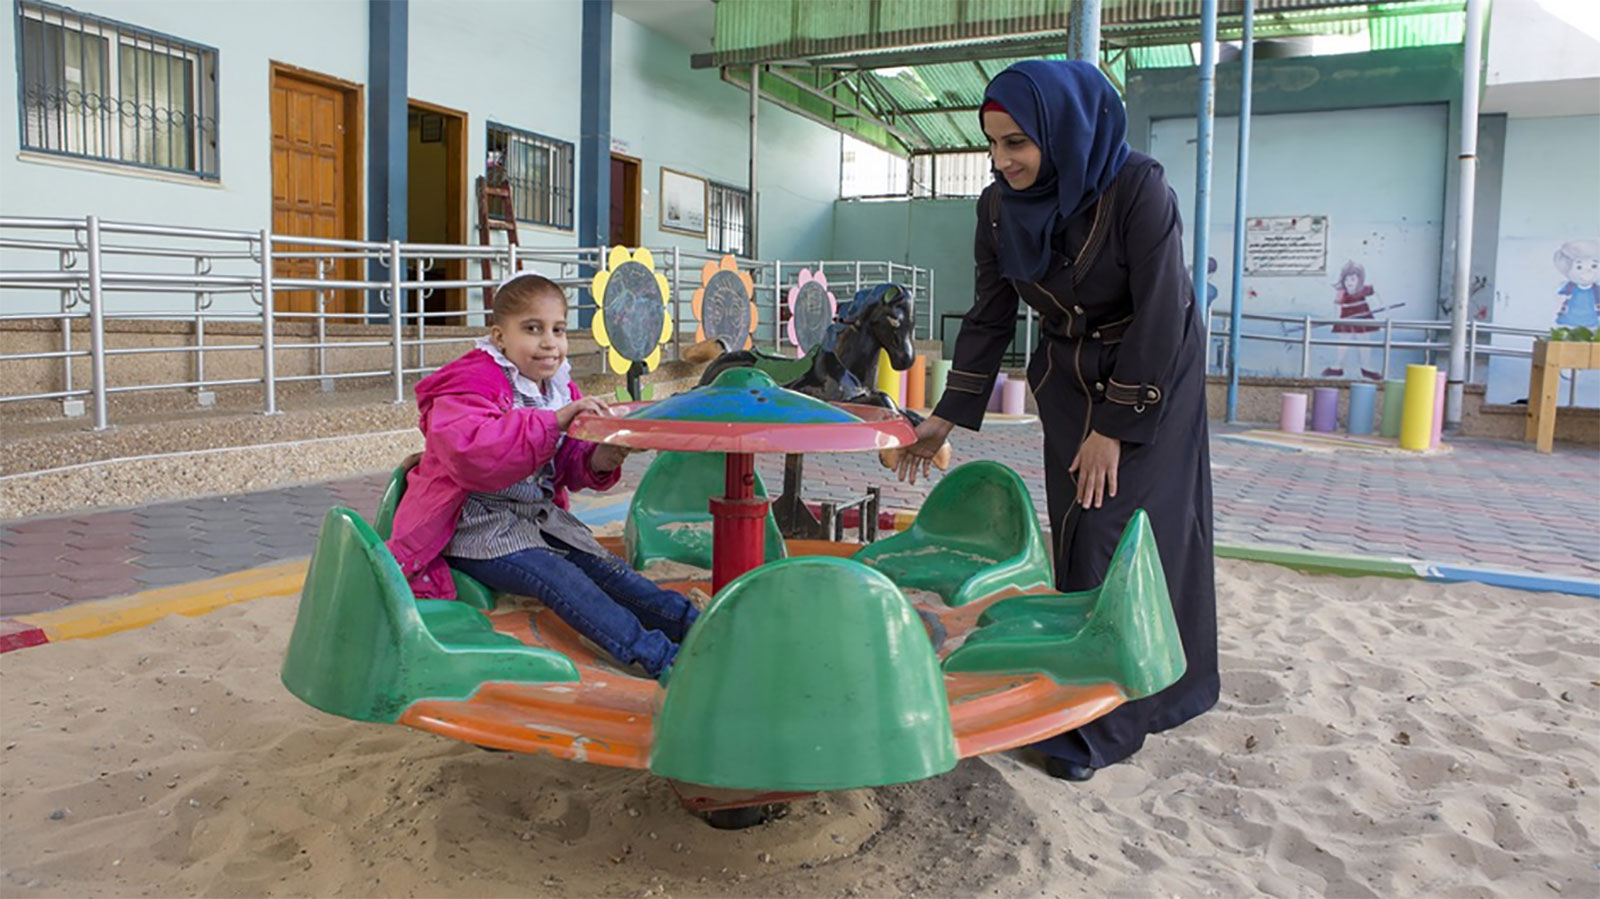 Narmeed-and-her-daughter-Shahed-play-outside-her-school